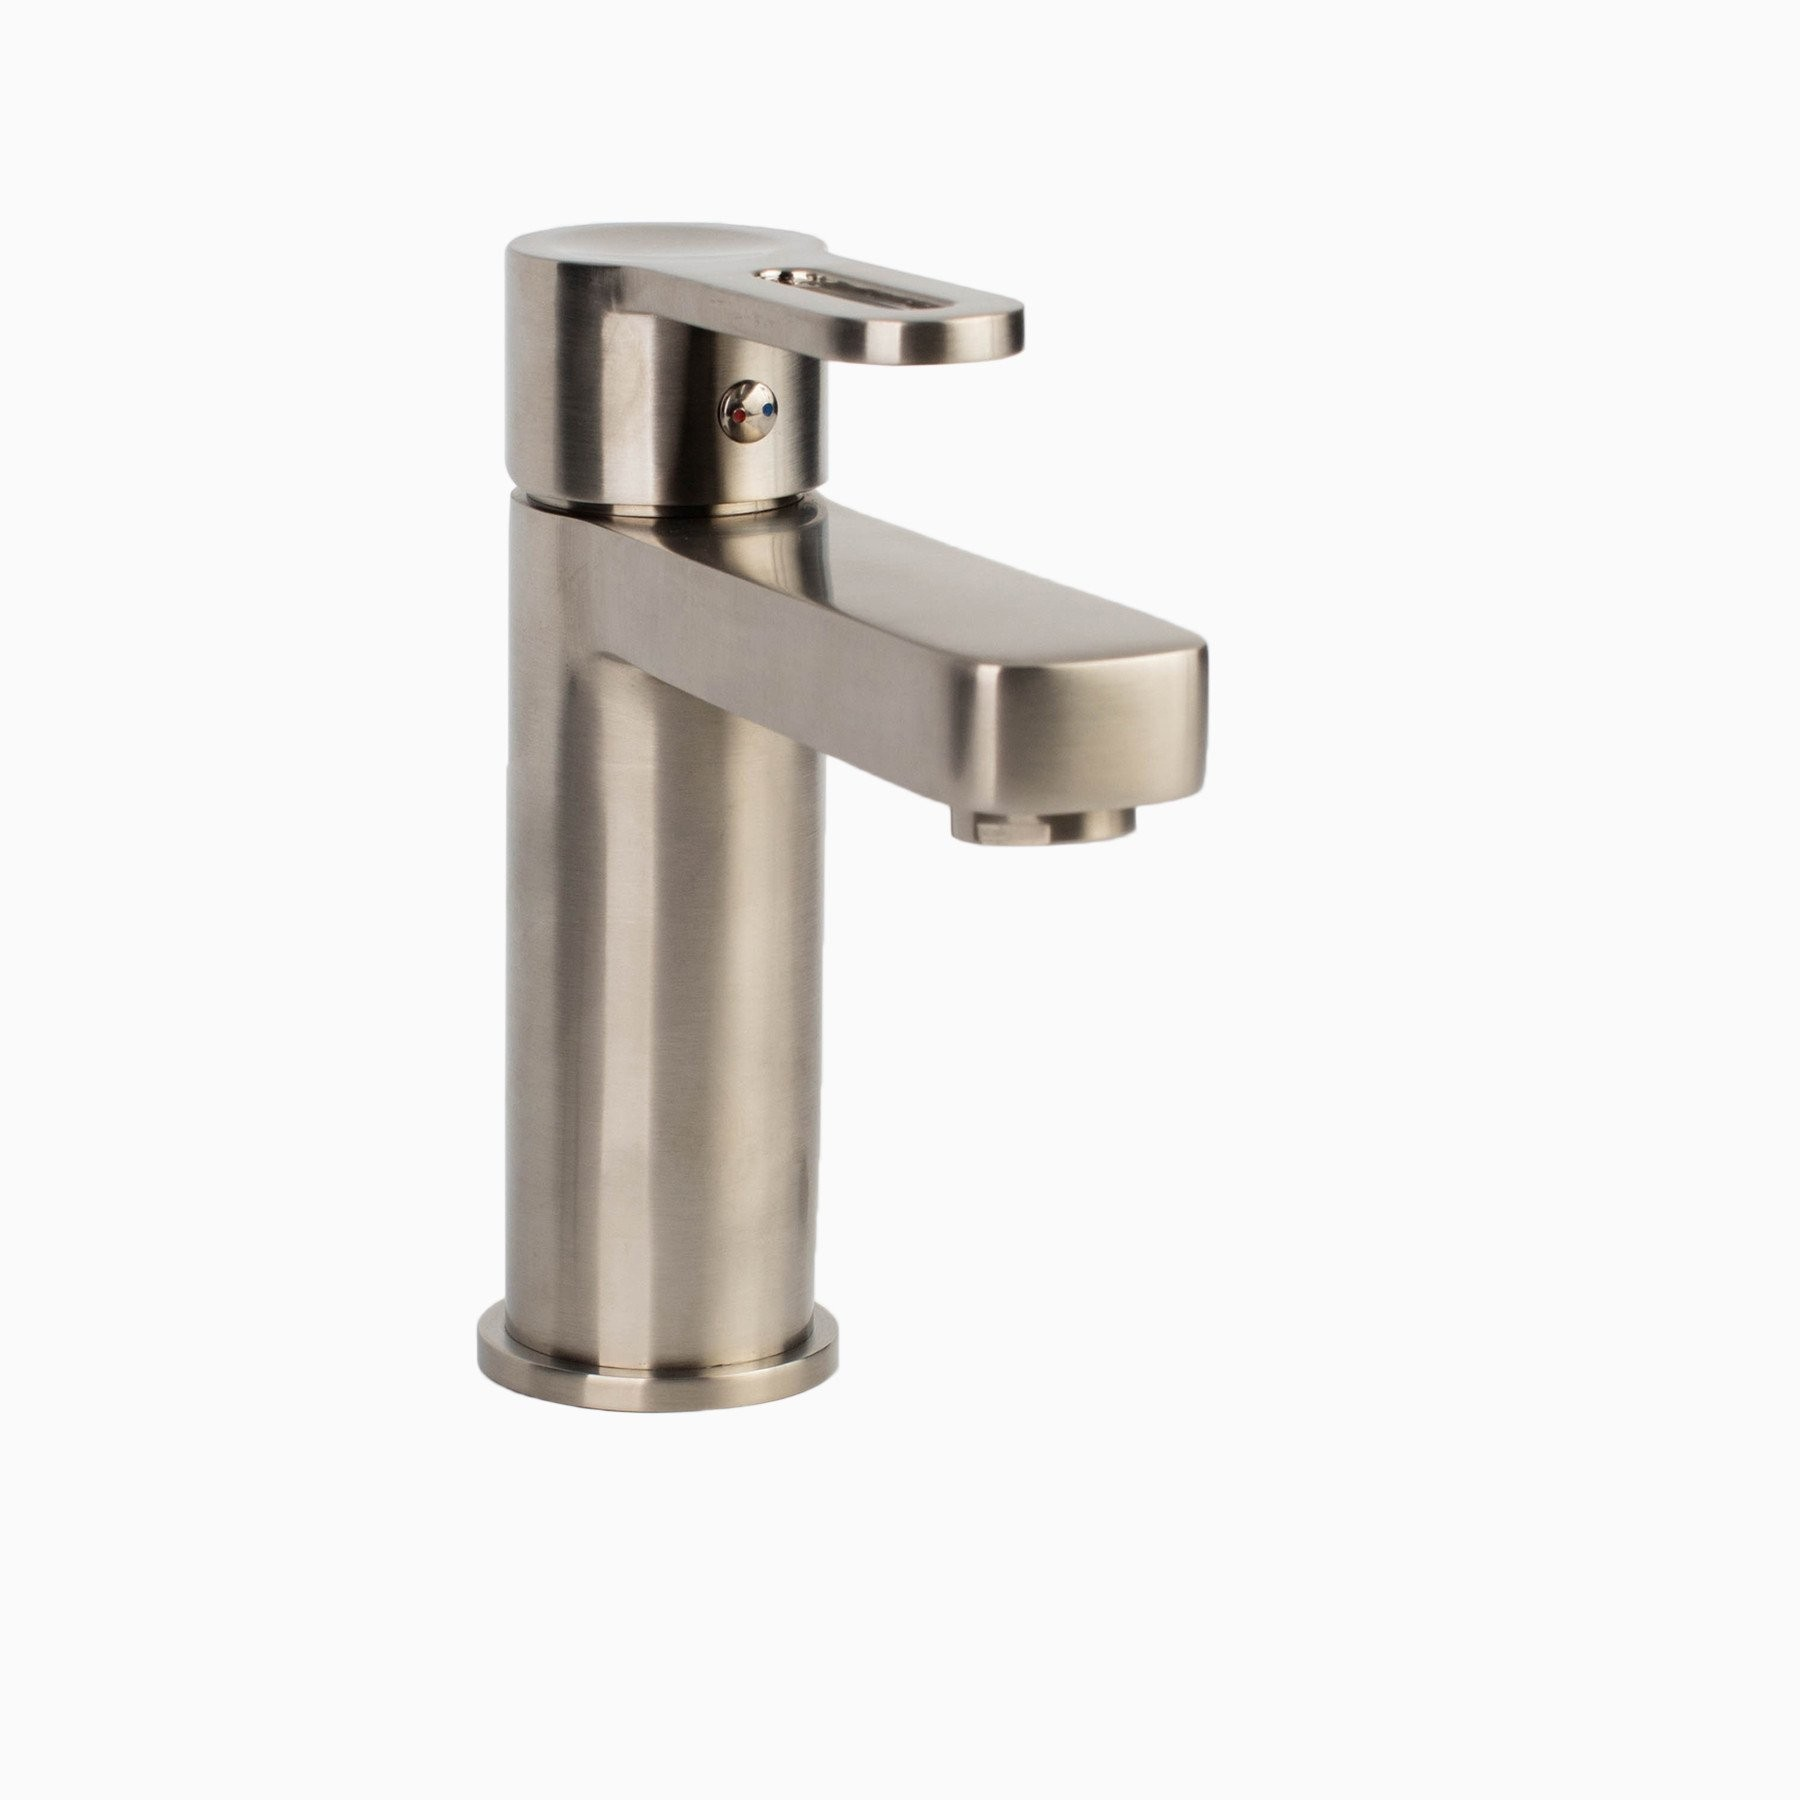 Allegro Single Handle Lavatory Sink Faucet Brushed Nickel